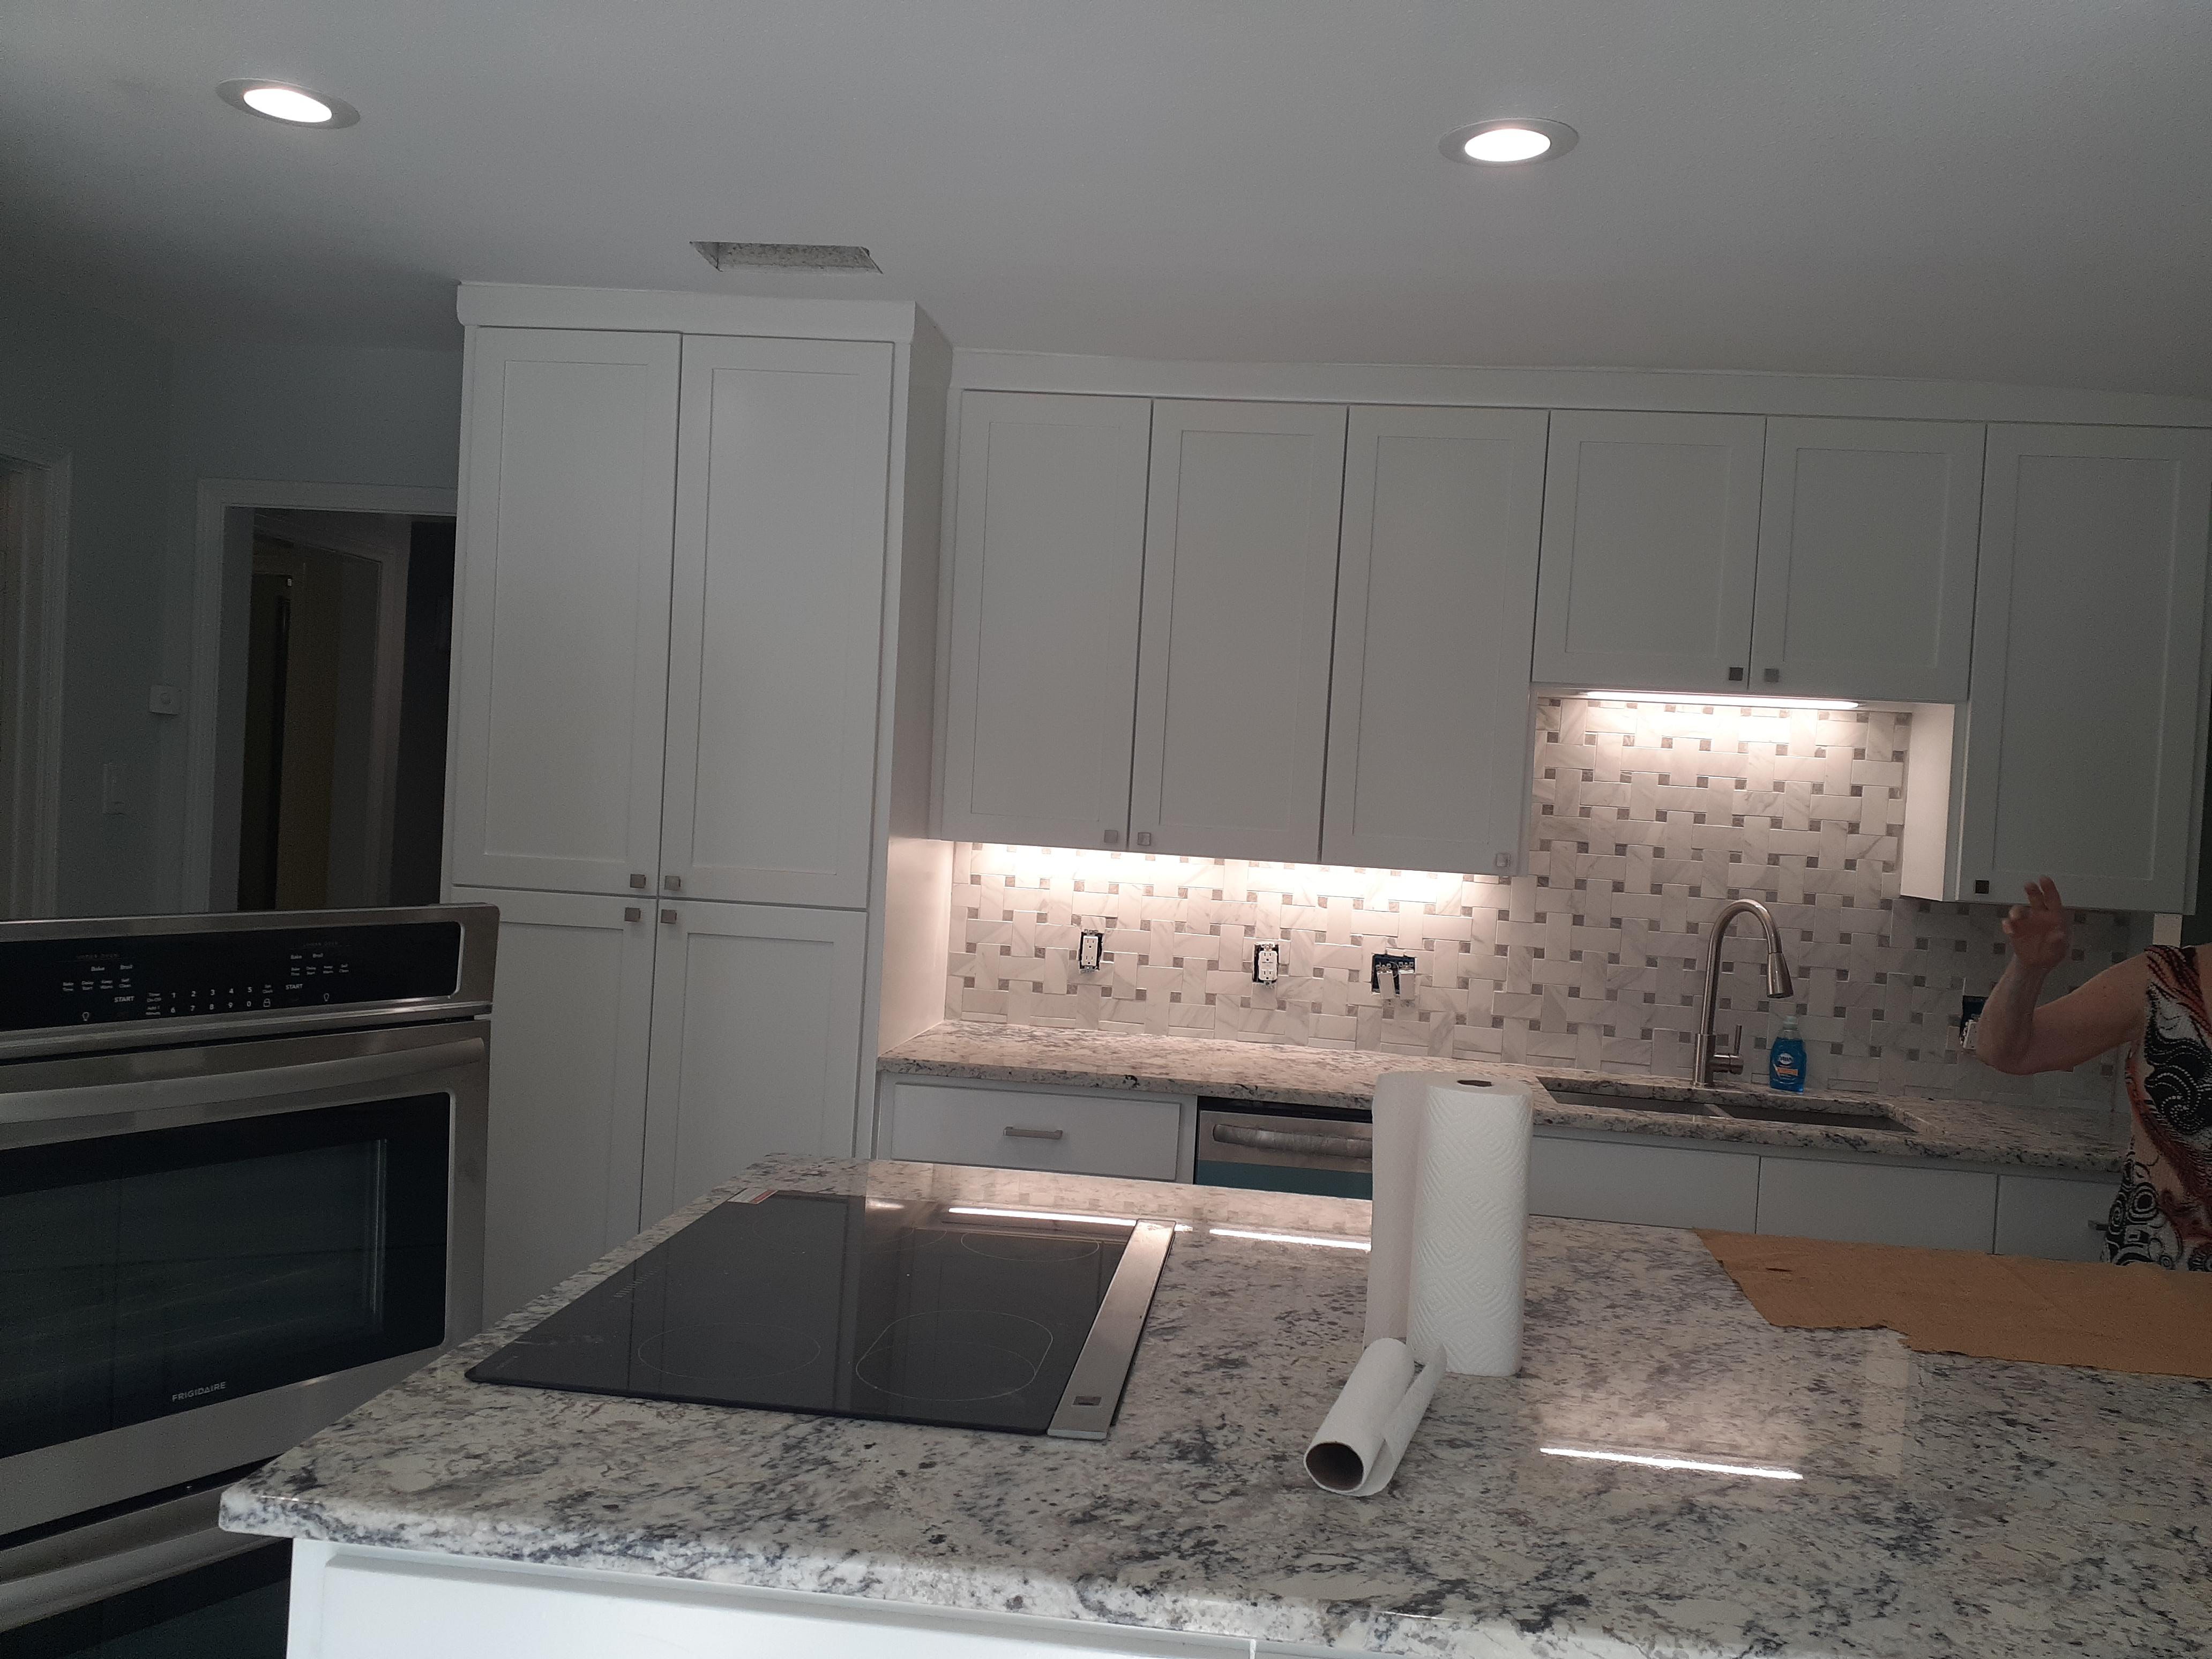 David Pro Painting and Remodeling